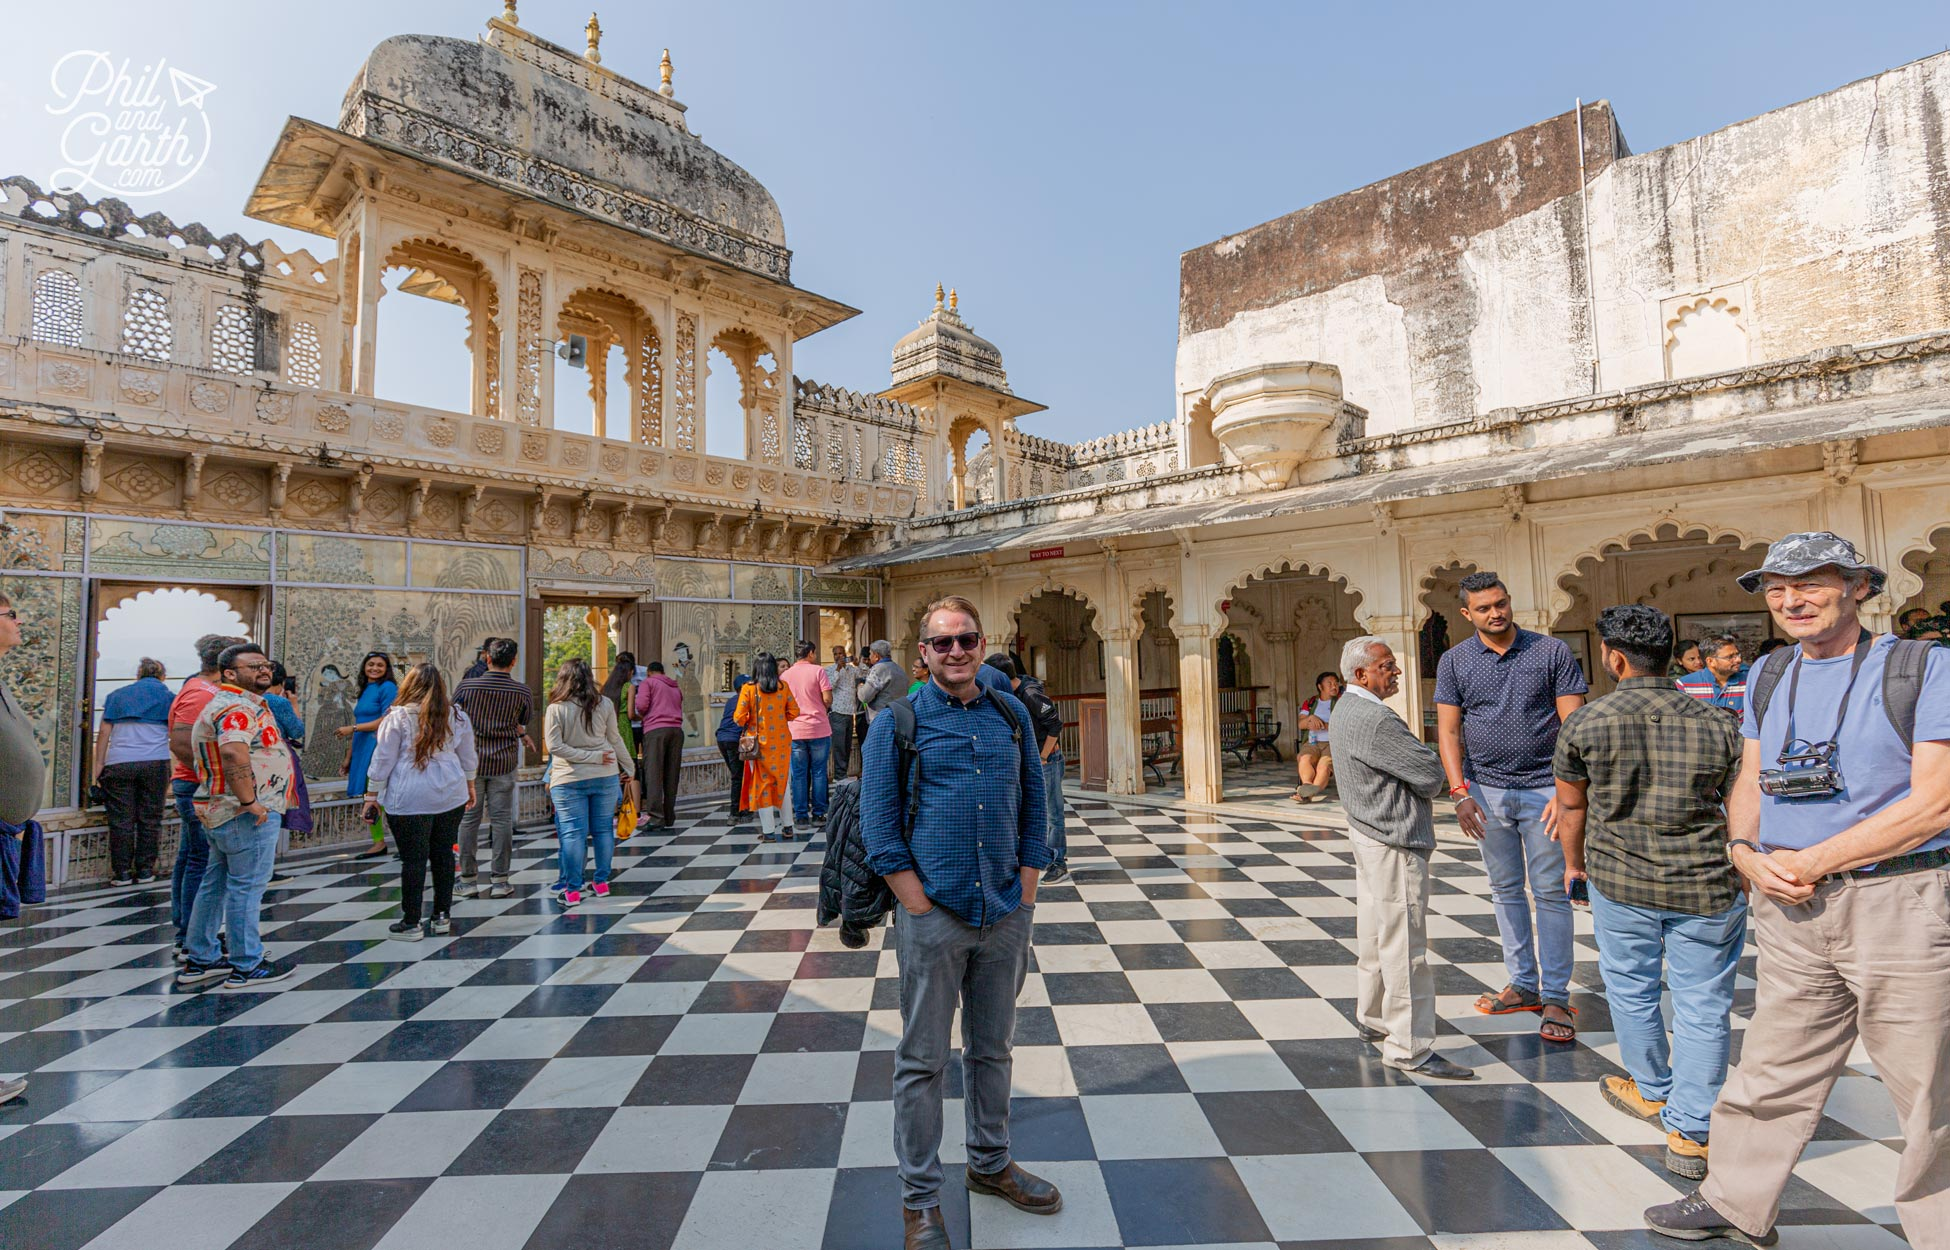 Garth in the Badi Charur Chowk palace courtyard. This area was used for music and dance